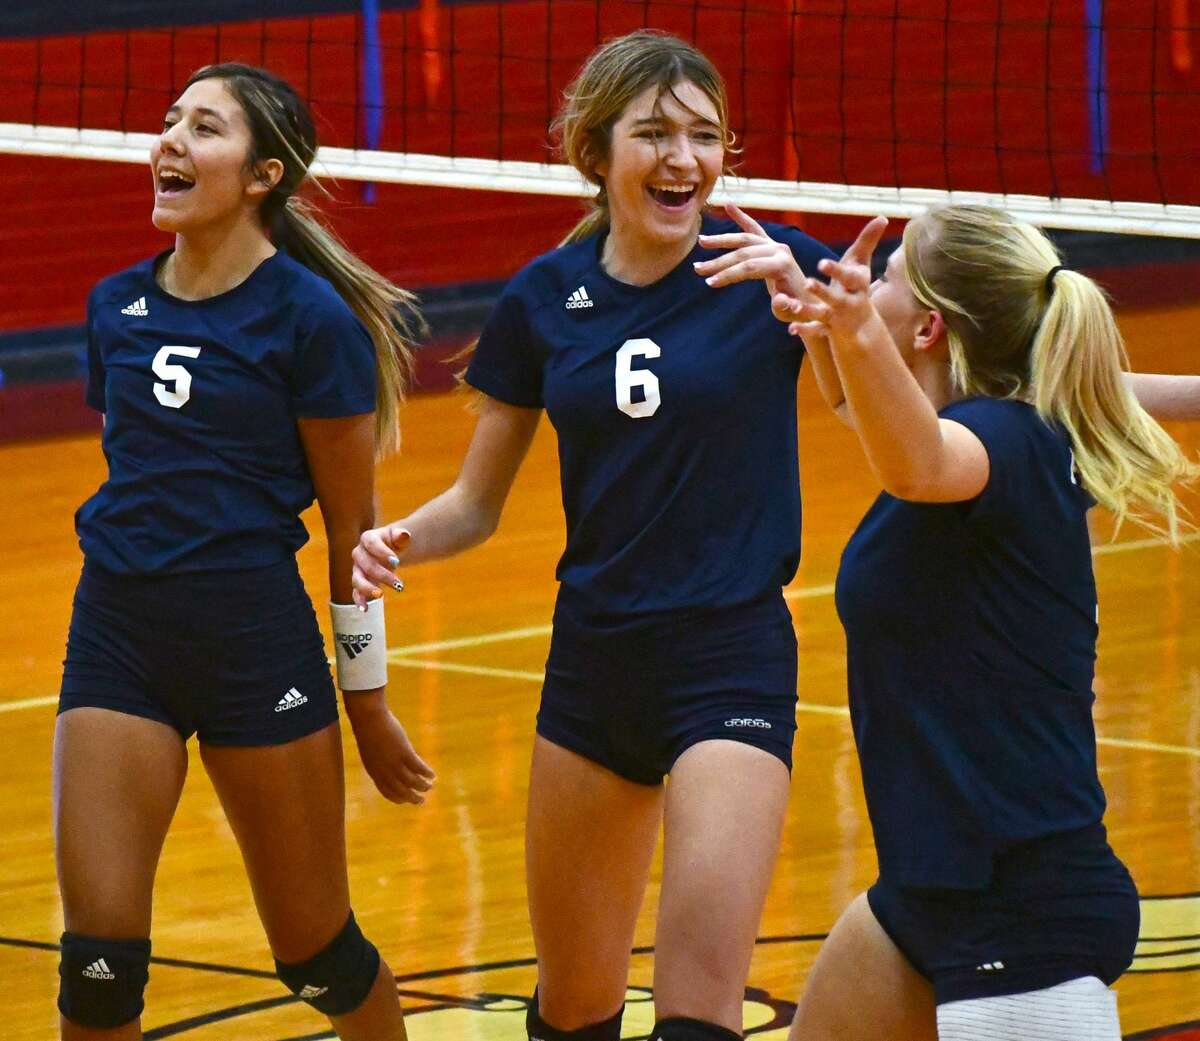 Plainview players Daniela Guzman (5), Adri Martin (6) and Haley Curtis react to a point during their non-district volleyball game against Idalou on Tuesday in the Dog House.